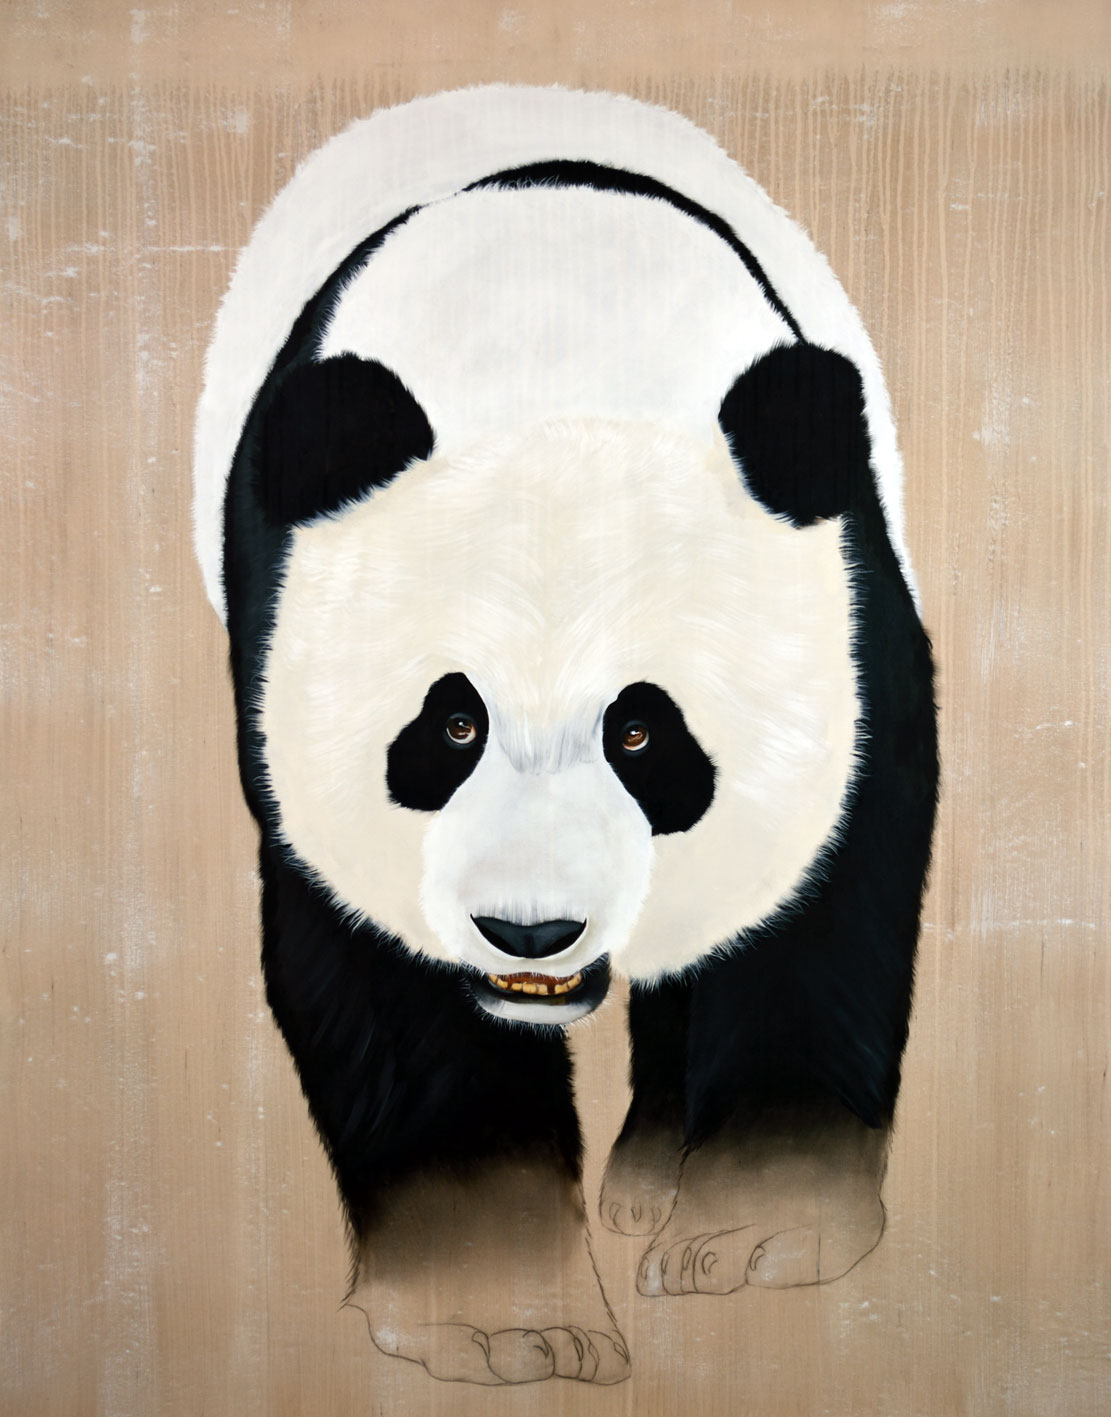 AILUROPODA MELANOLEUCA panda-giant-ailuropoda-melanoleuca-threatened-endangered-extinction Thierry Bisch painter animals painting art decoration hotel design interior luxury nature biodiversity conservation